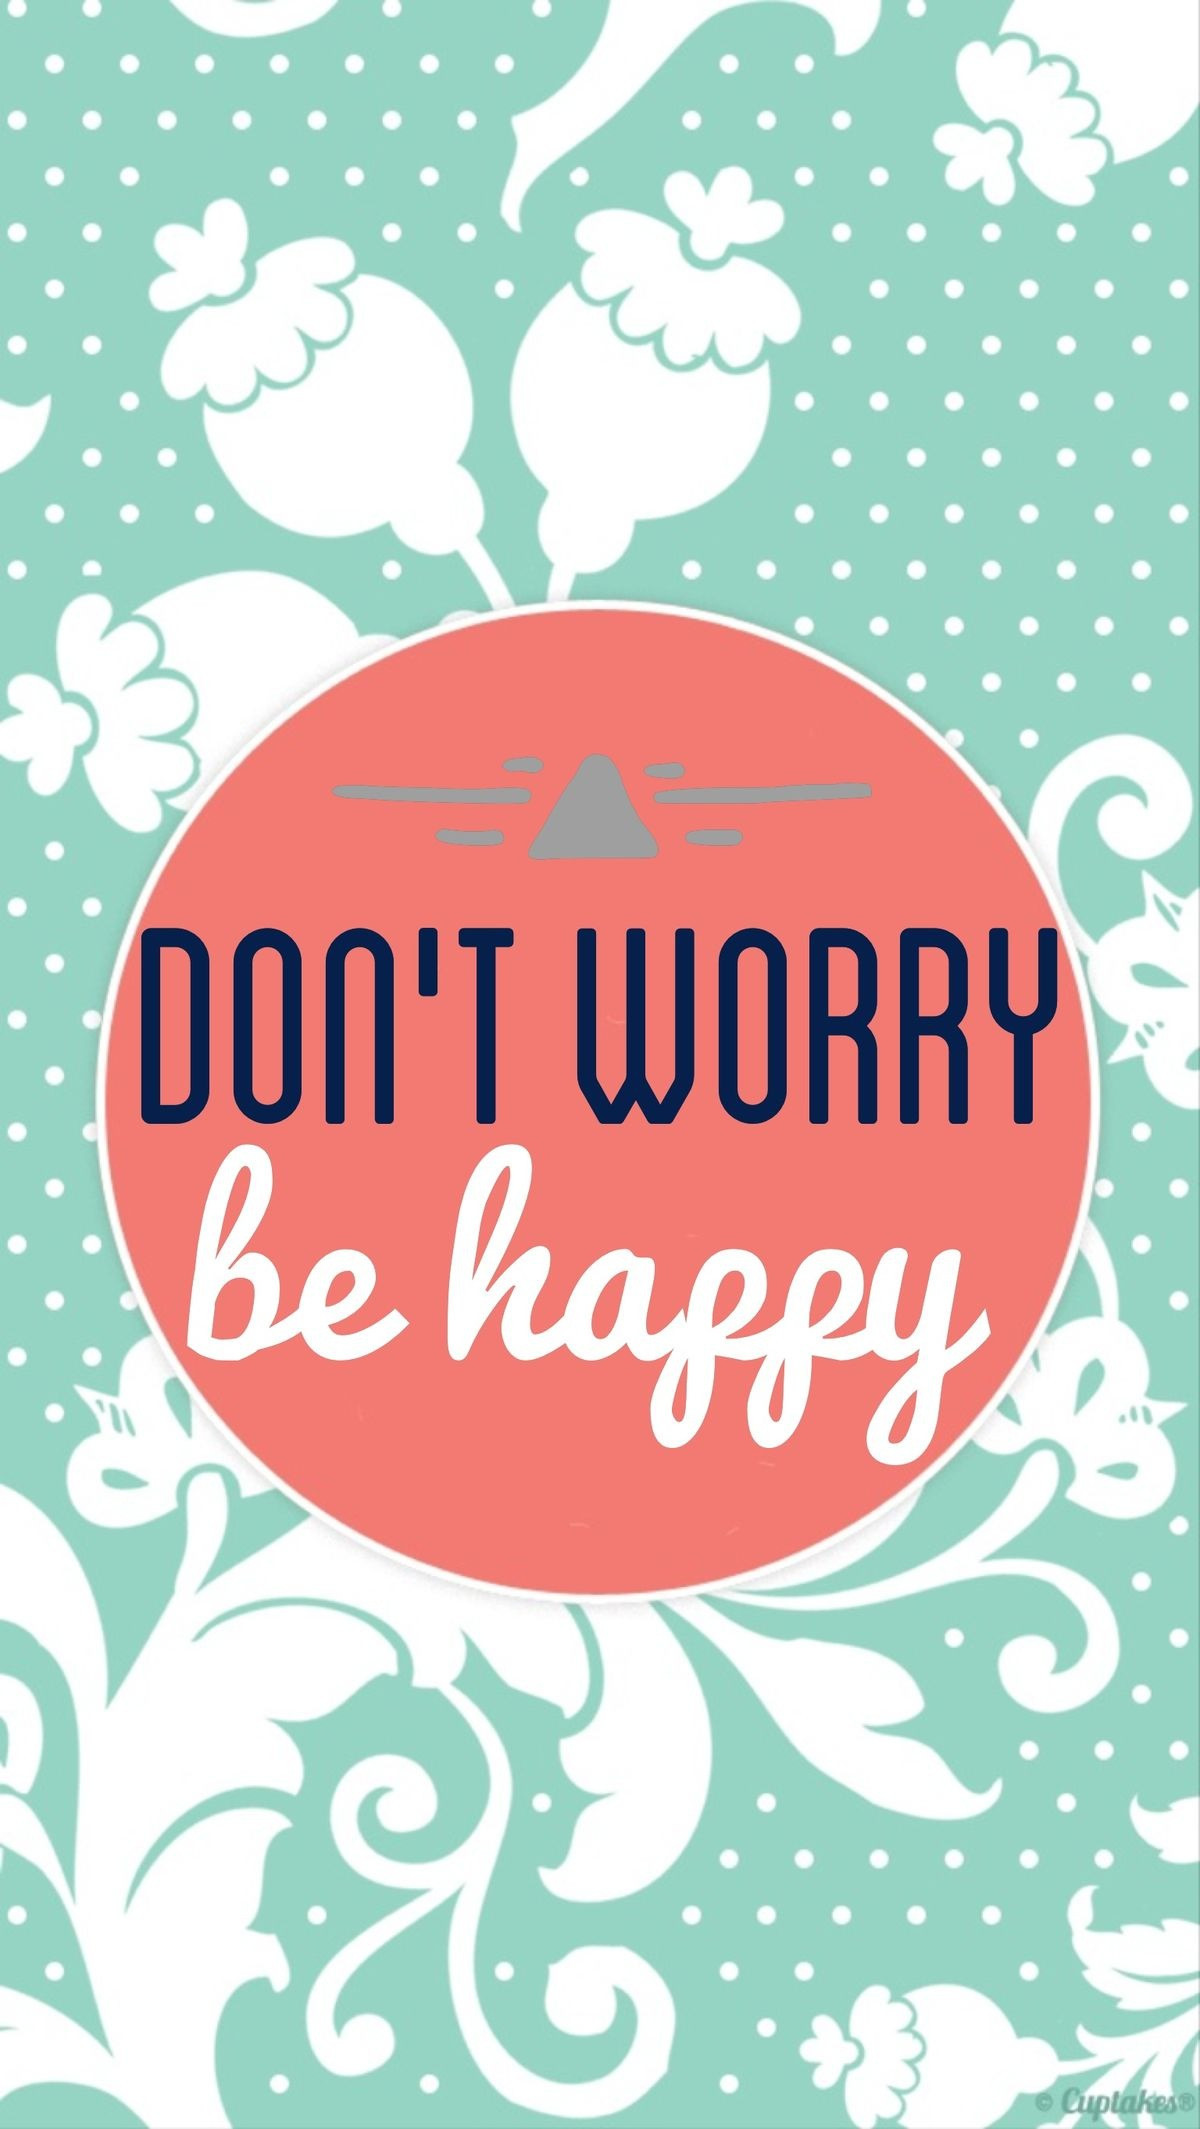 1200x2129 Don't worry be happy wallpaper